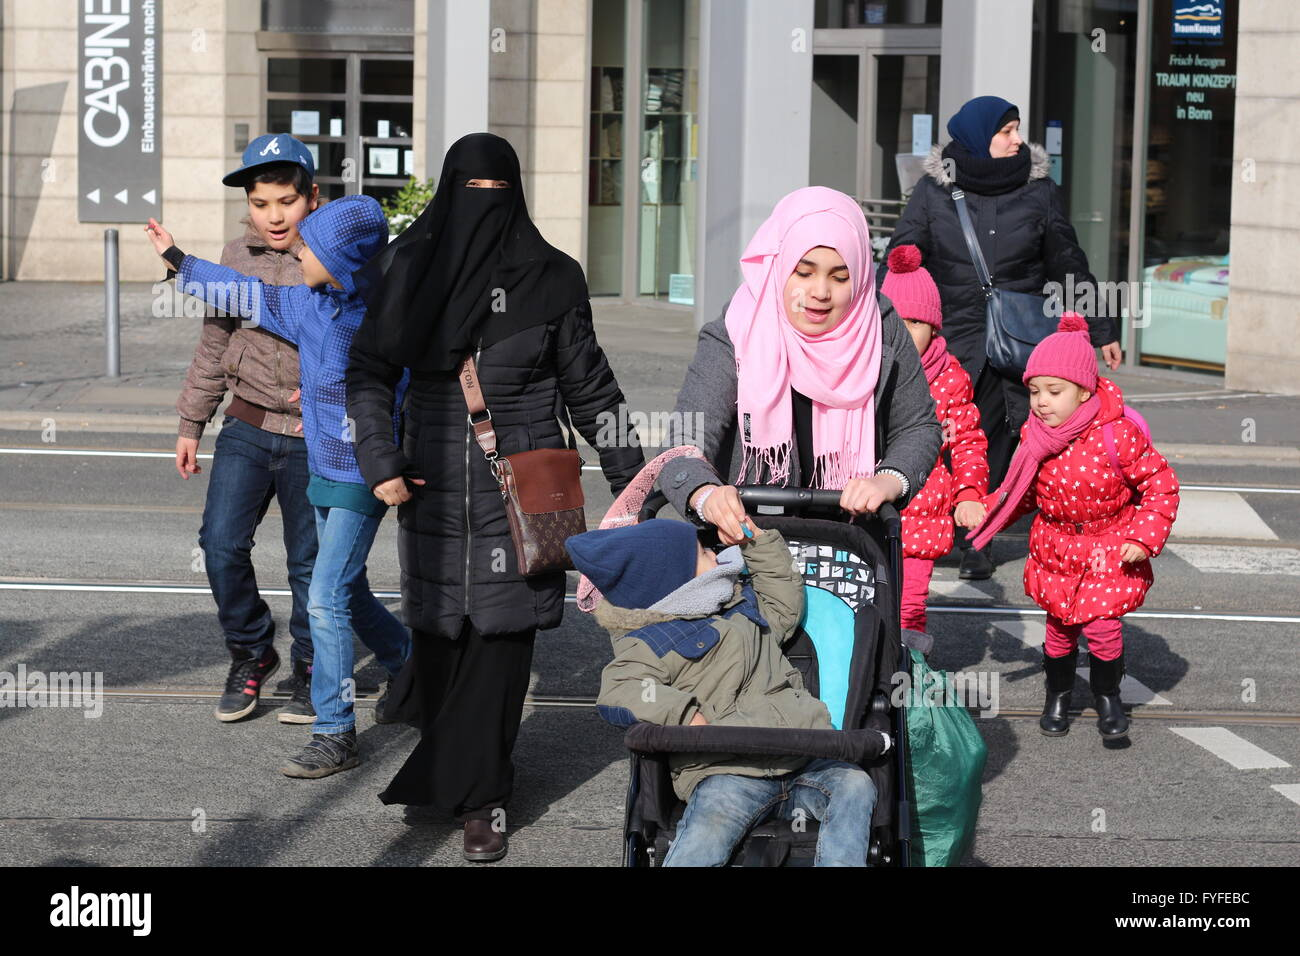 family of Refugees with Burka and kerchief on a street in Bonn, Germany - Stock Image